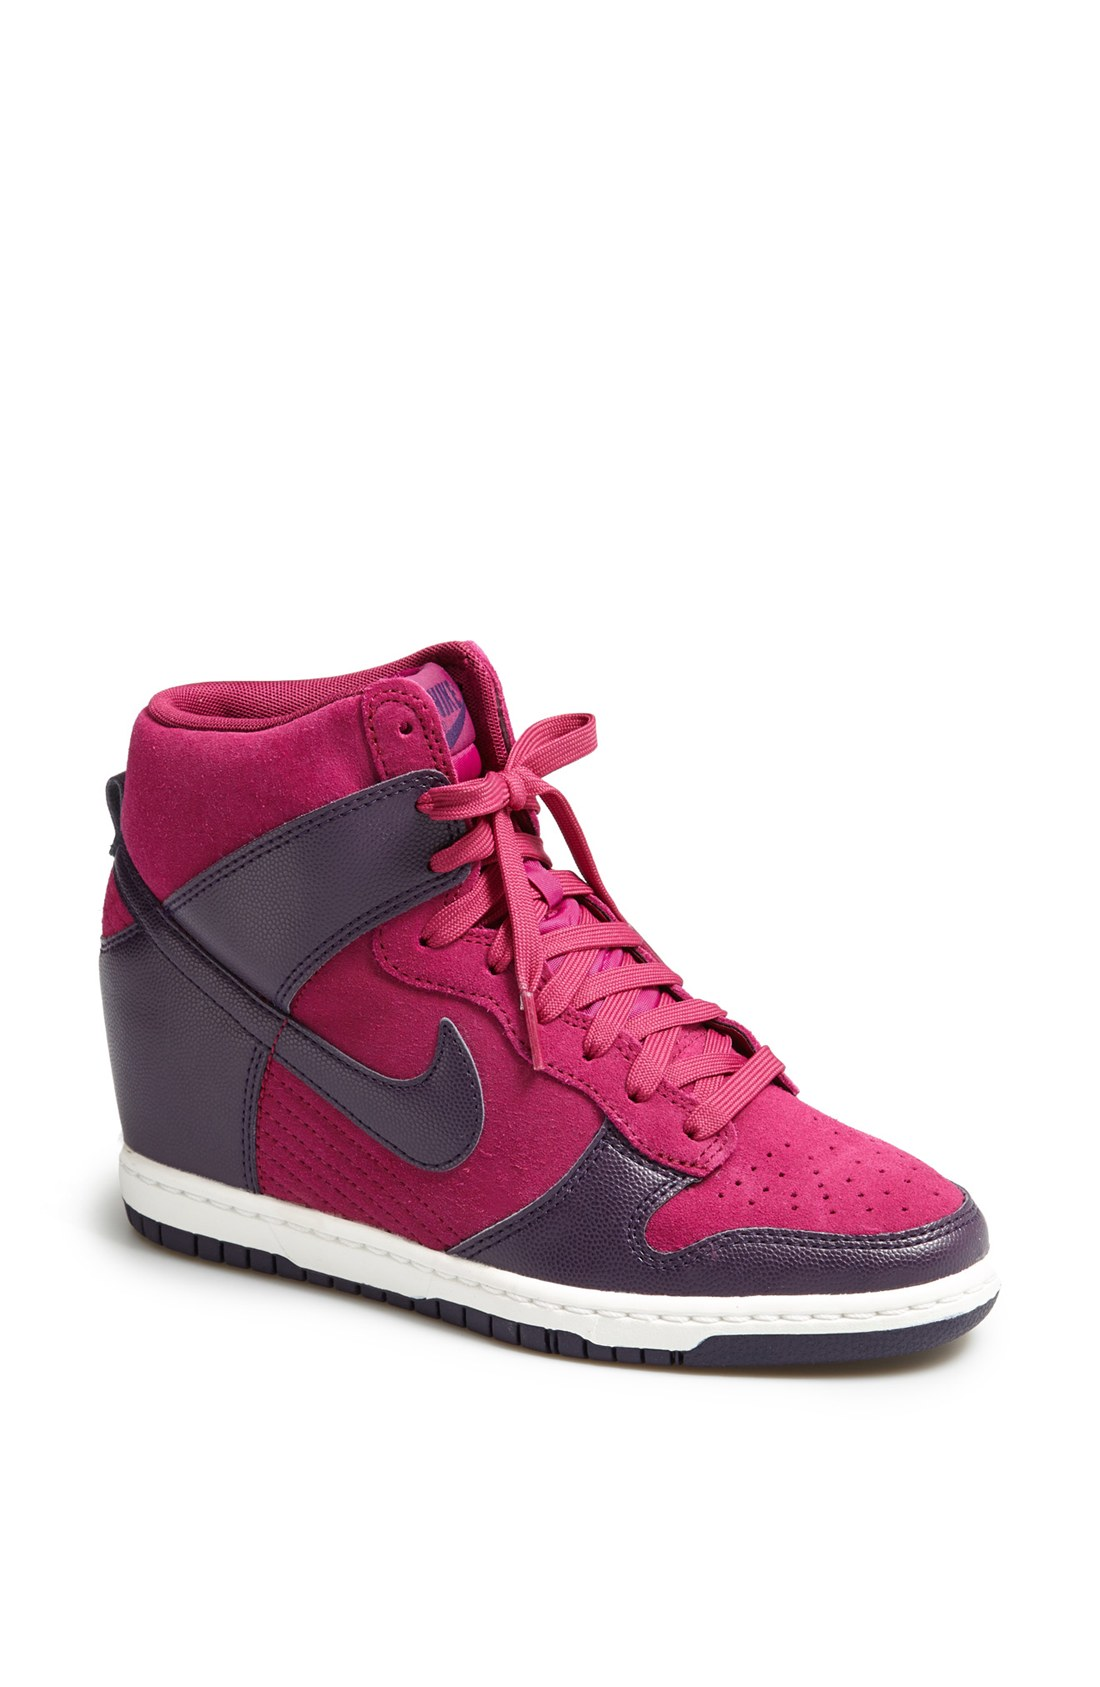 nike dunk sky hi wedge sneaker in purple purple dynasty. Black Bedroom Furniture Sets. Home Design Ideas